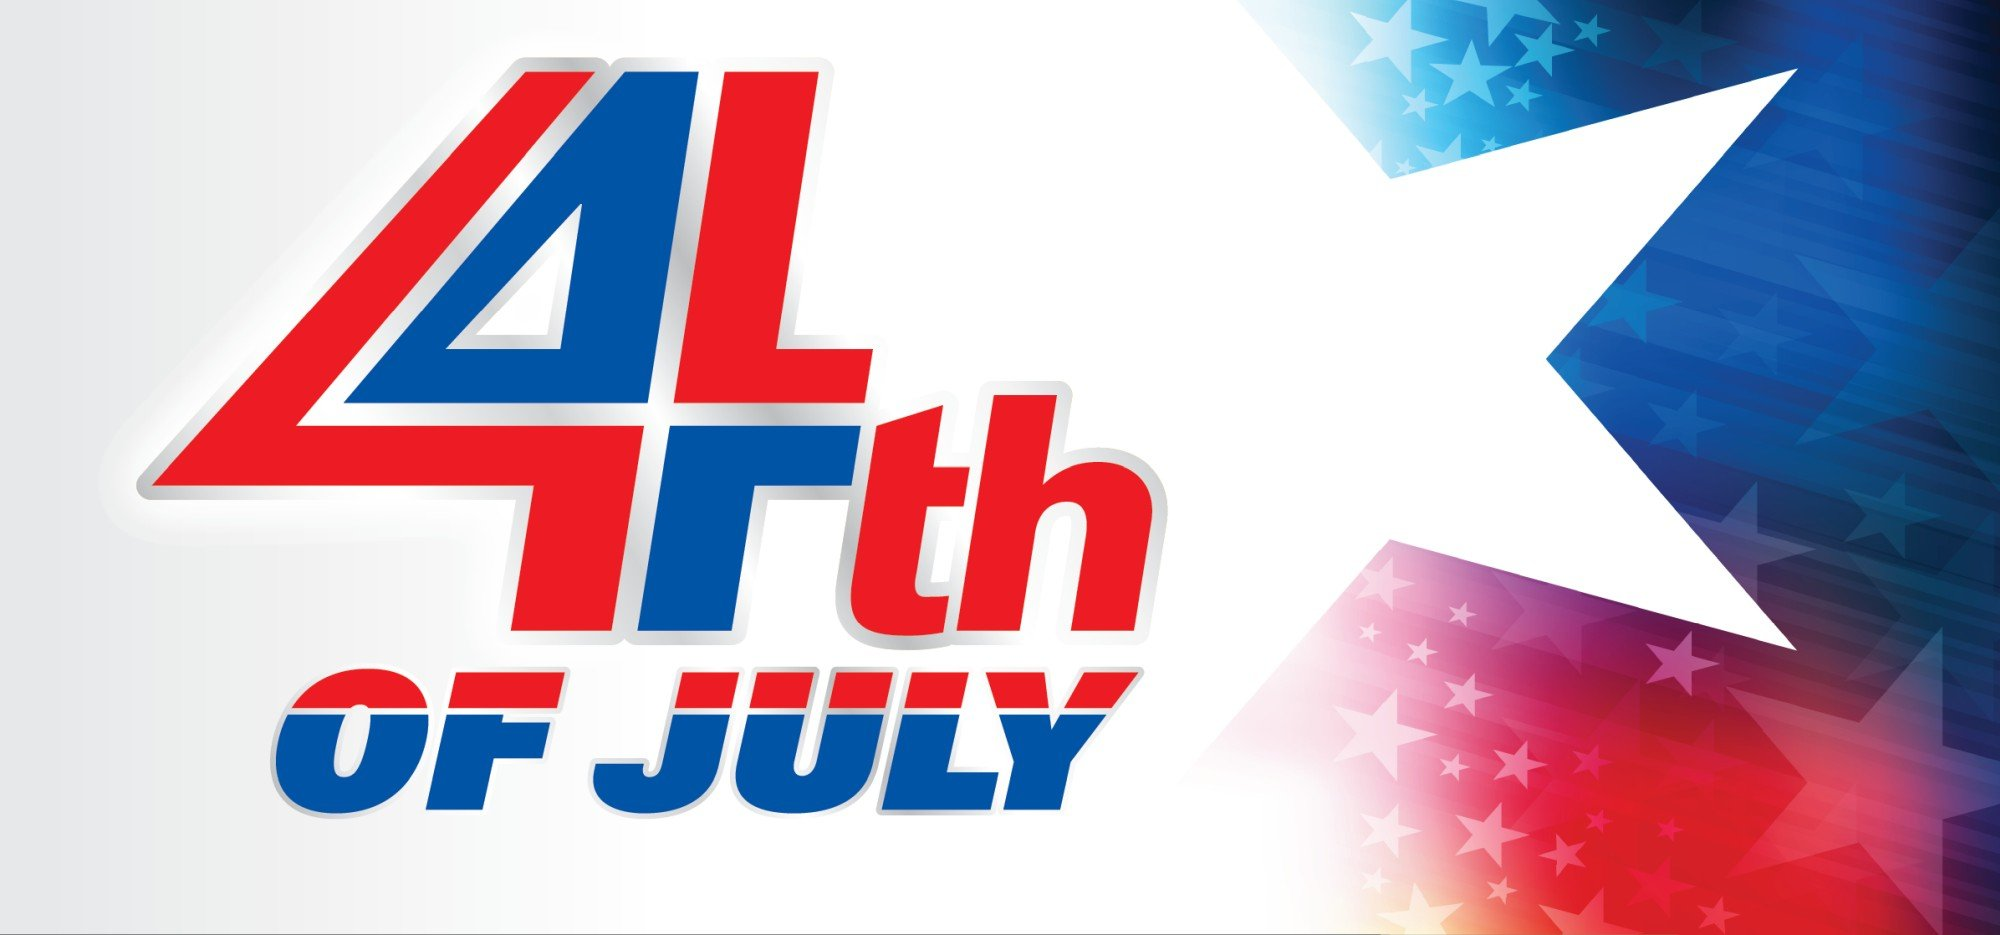 Web Header Promotion - Celebrate the 4th of July